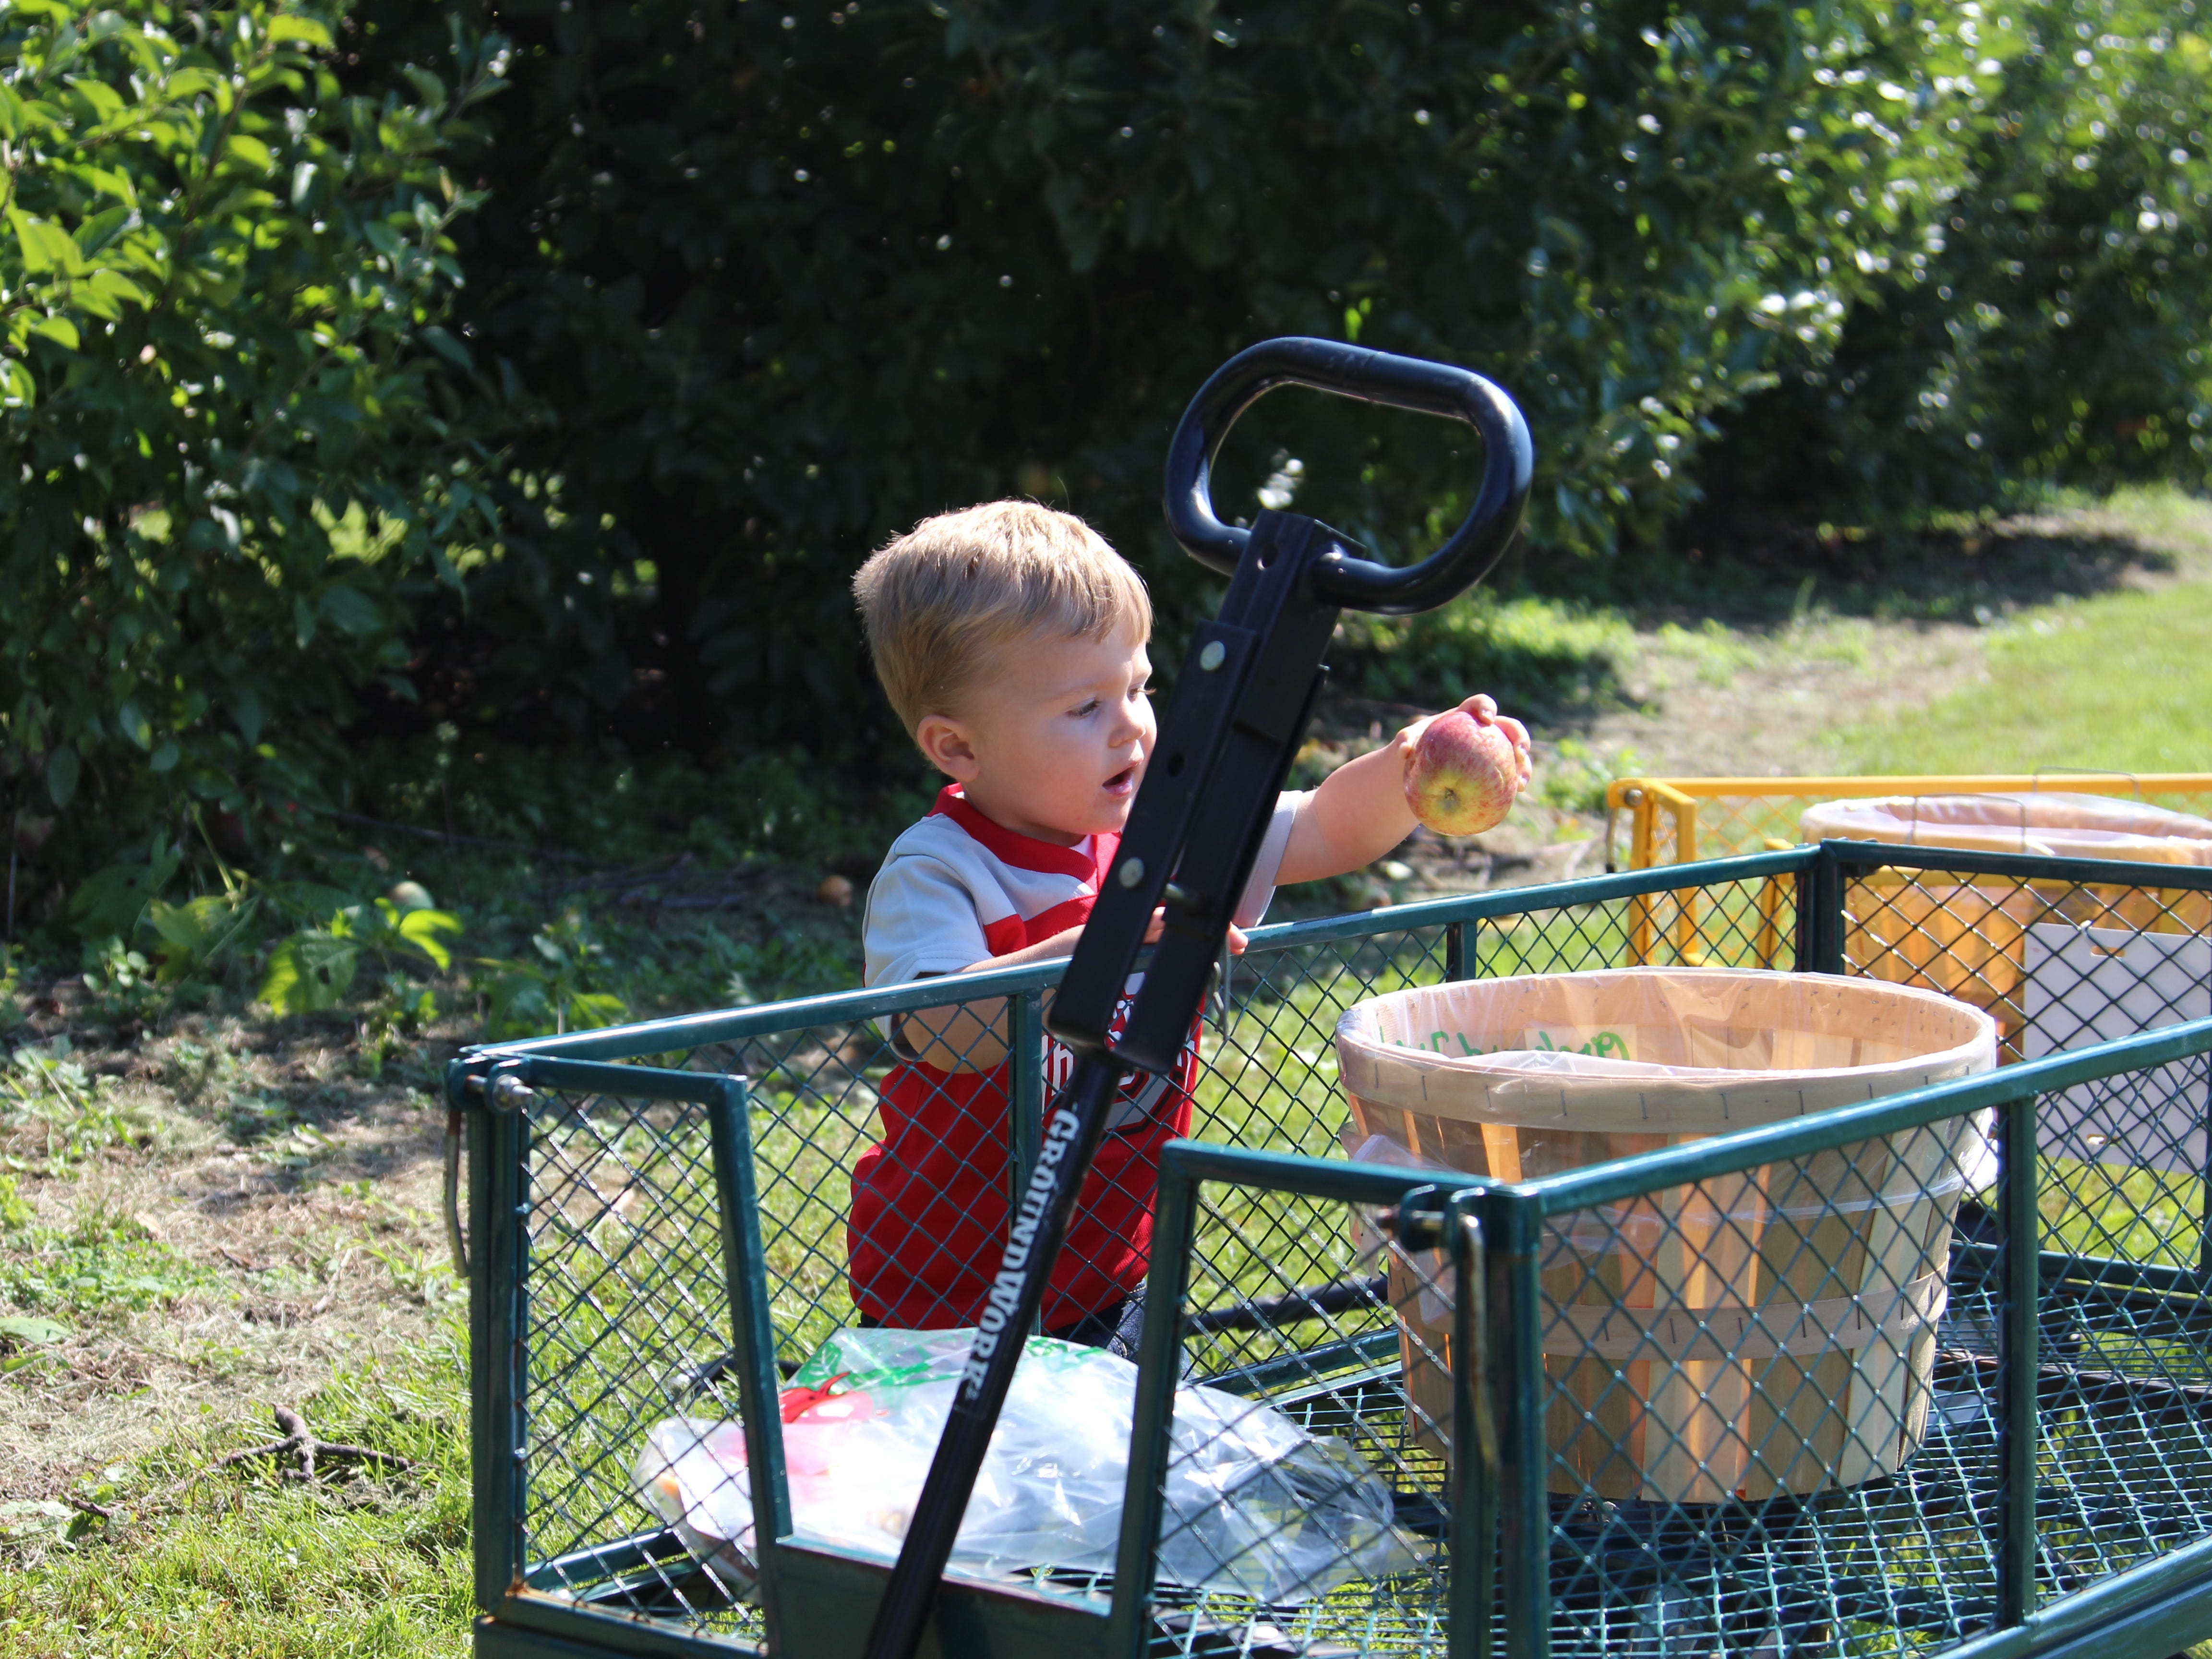 Greyson Snyder, 2, helps put apples picked at Applefest into a barrel. The festival occurred Saturday at Lawrence Orchards.